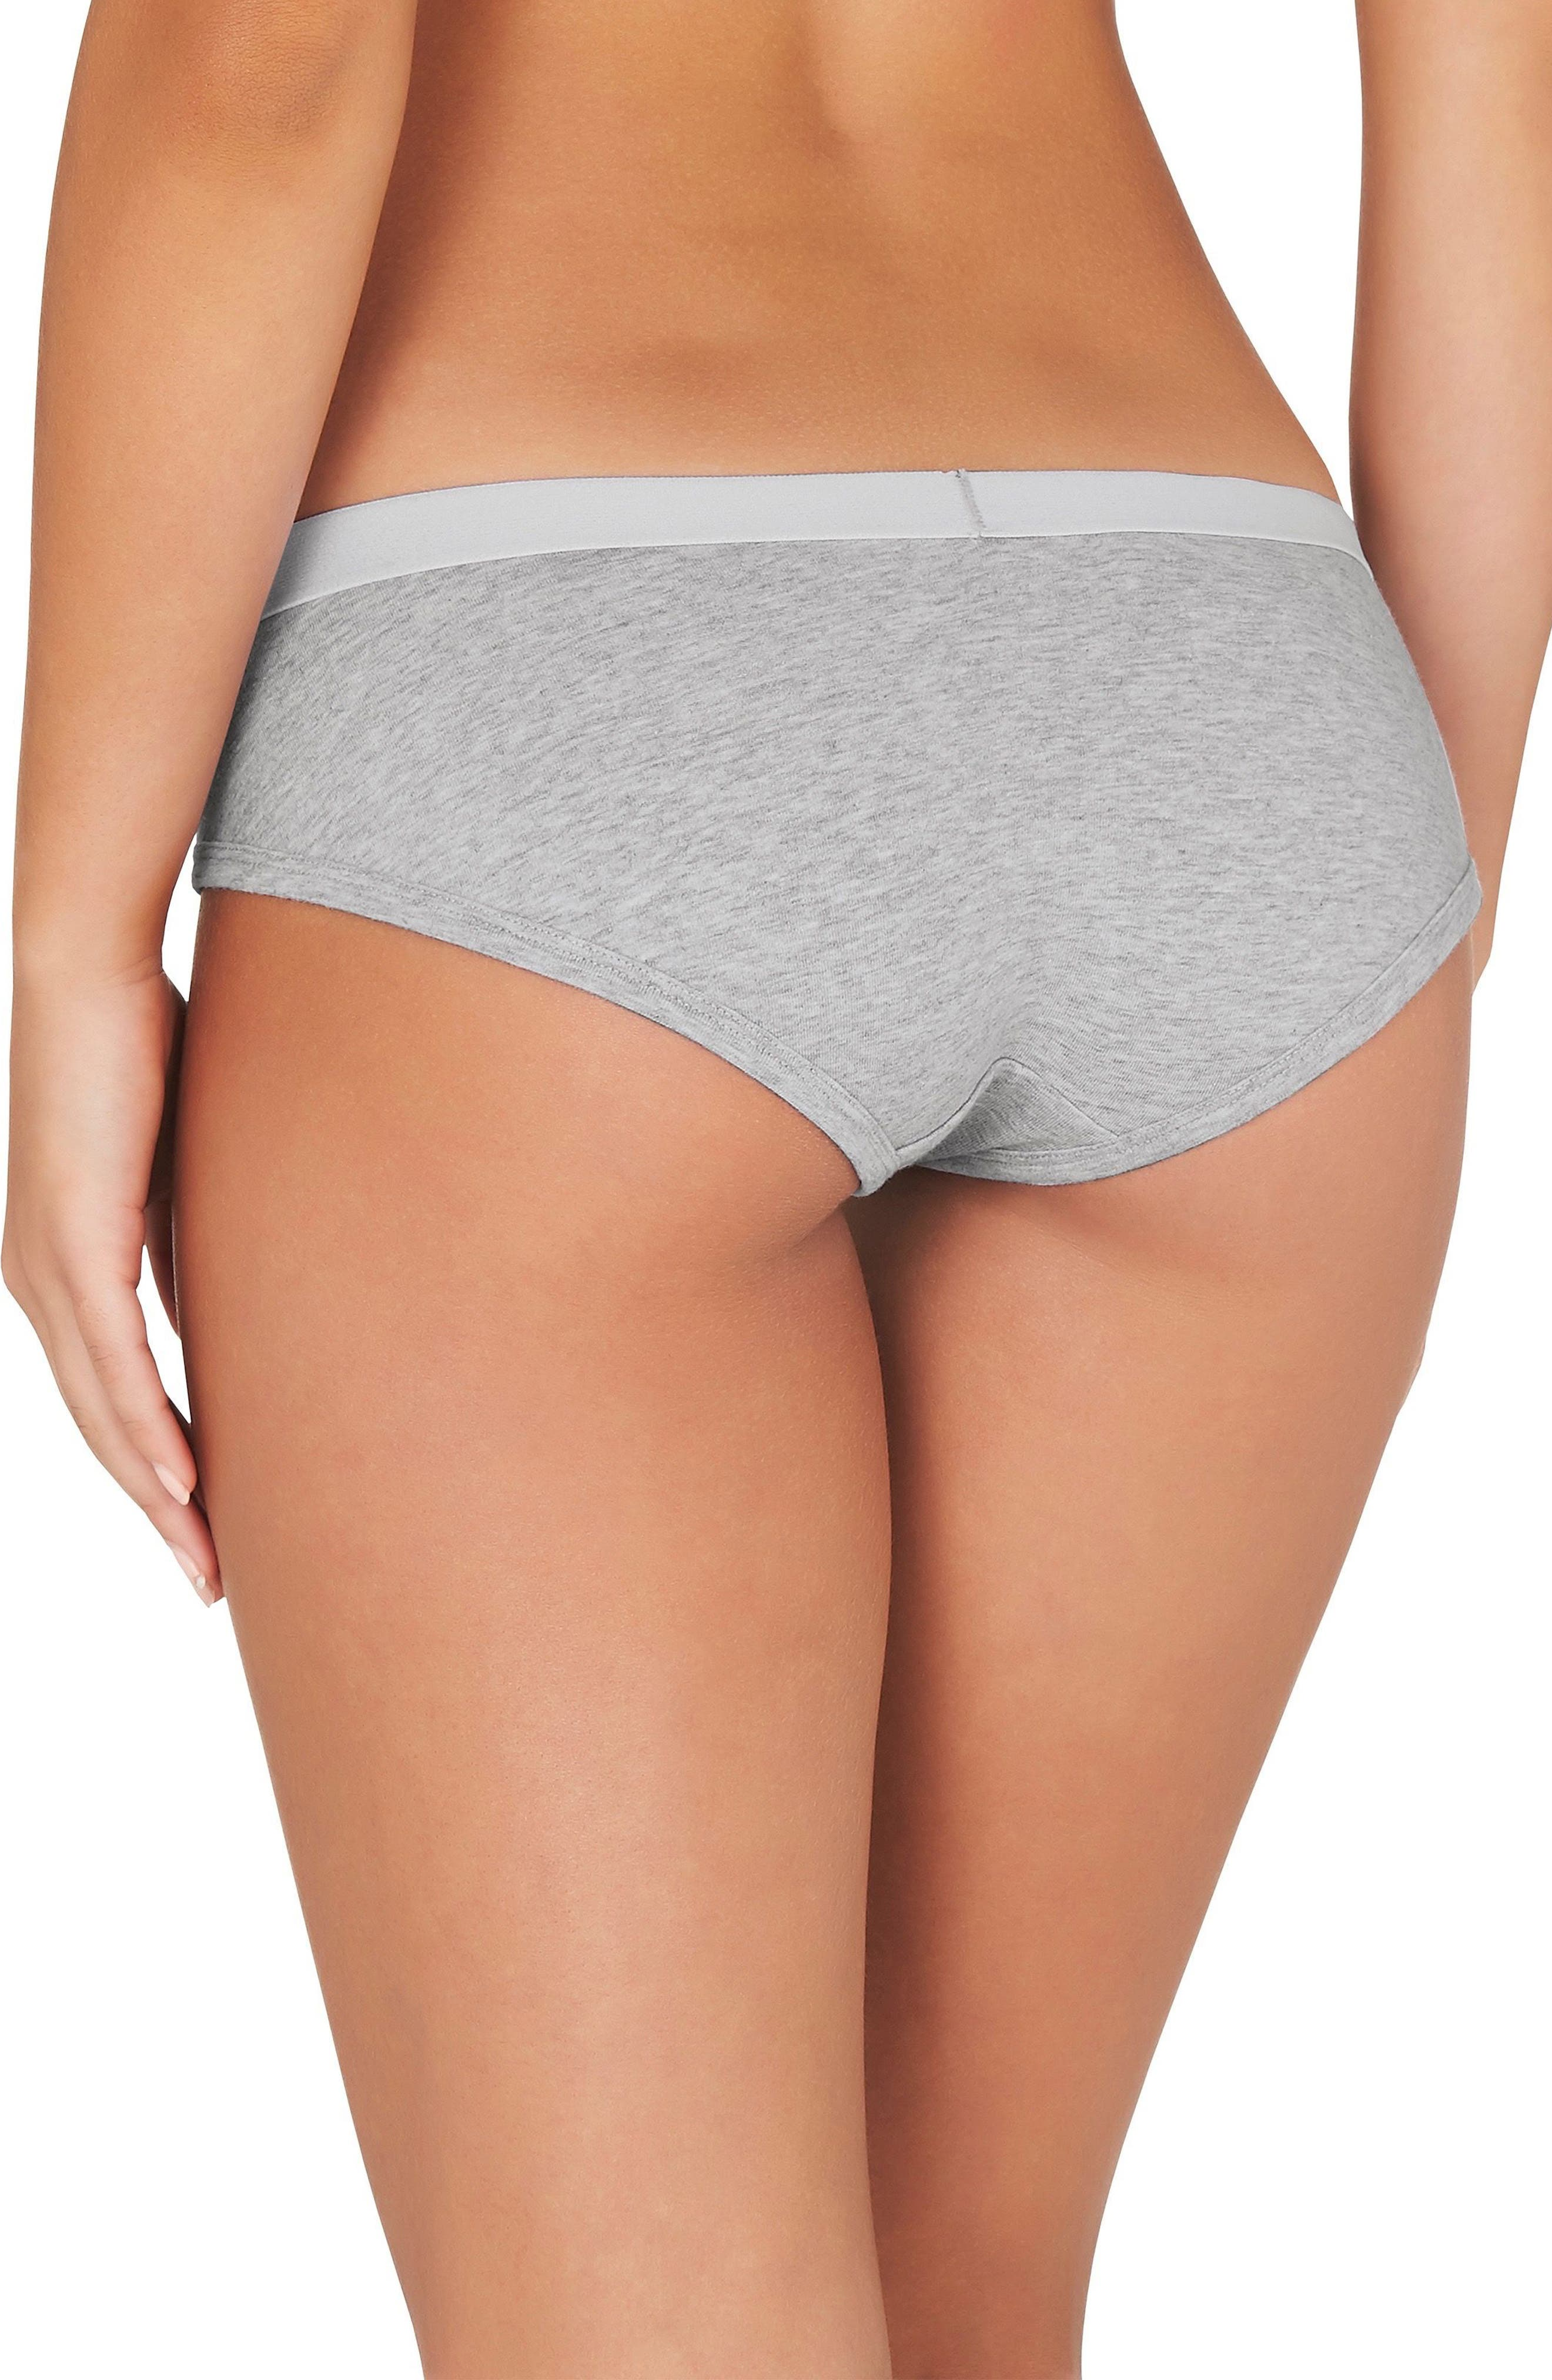 3-Pack Stretch Organic Cotton Hipster Panties,                             Alternate thumbnail 2, color,                             Grey Marle